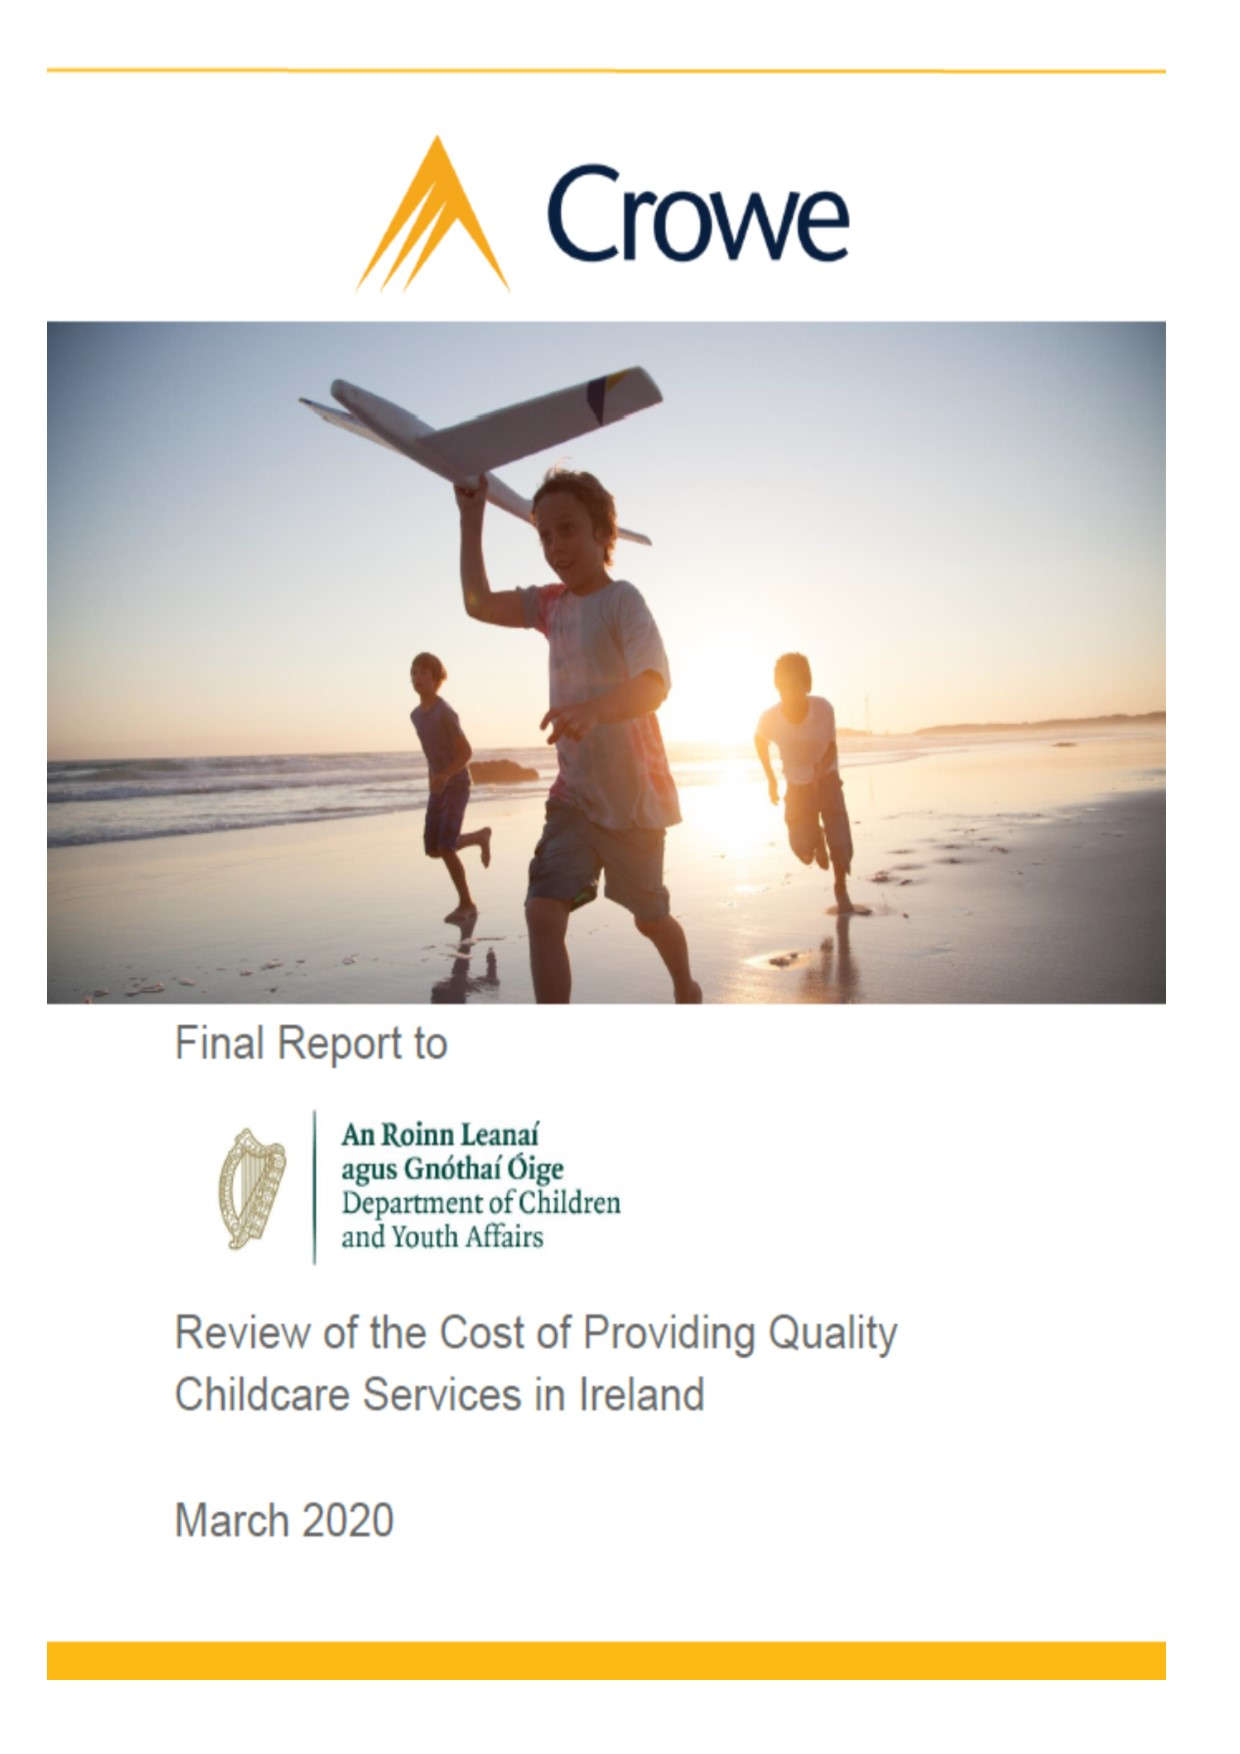 Review of costs of childcare